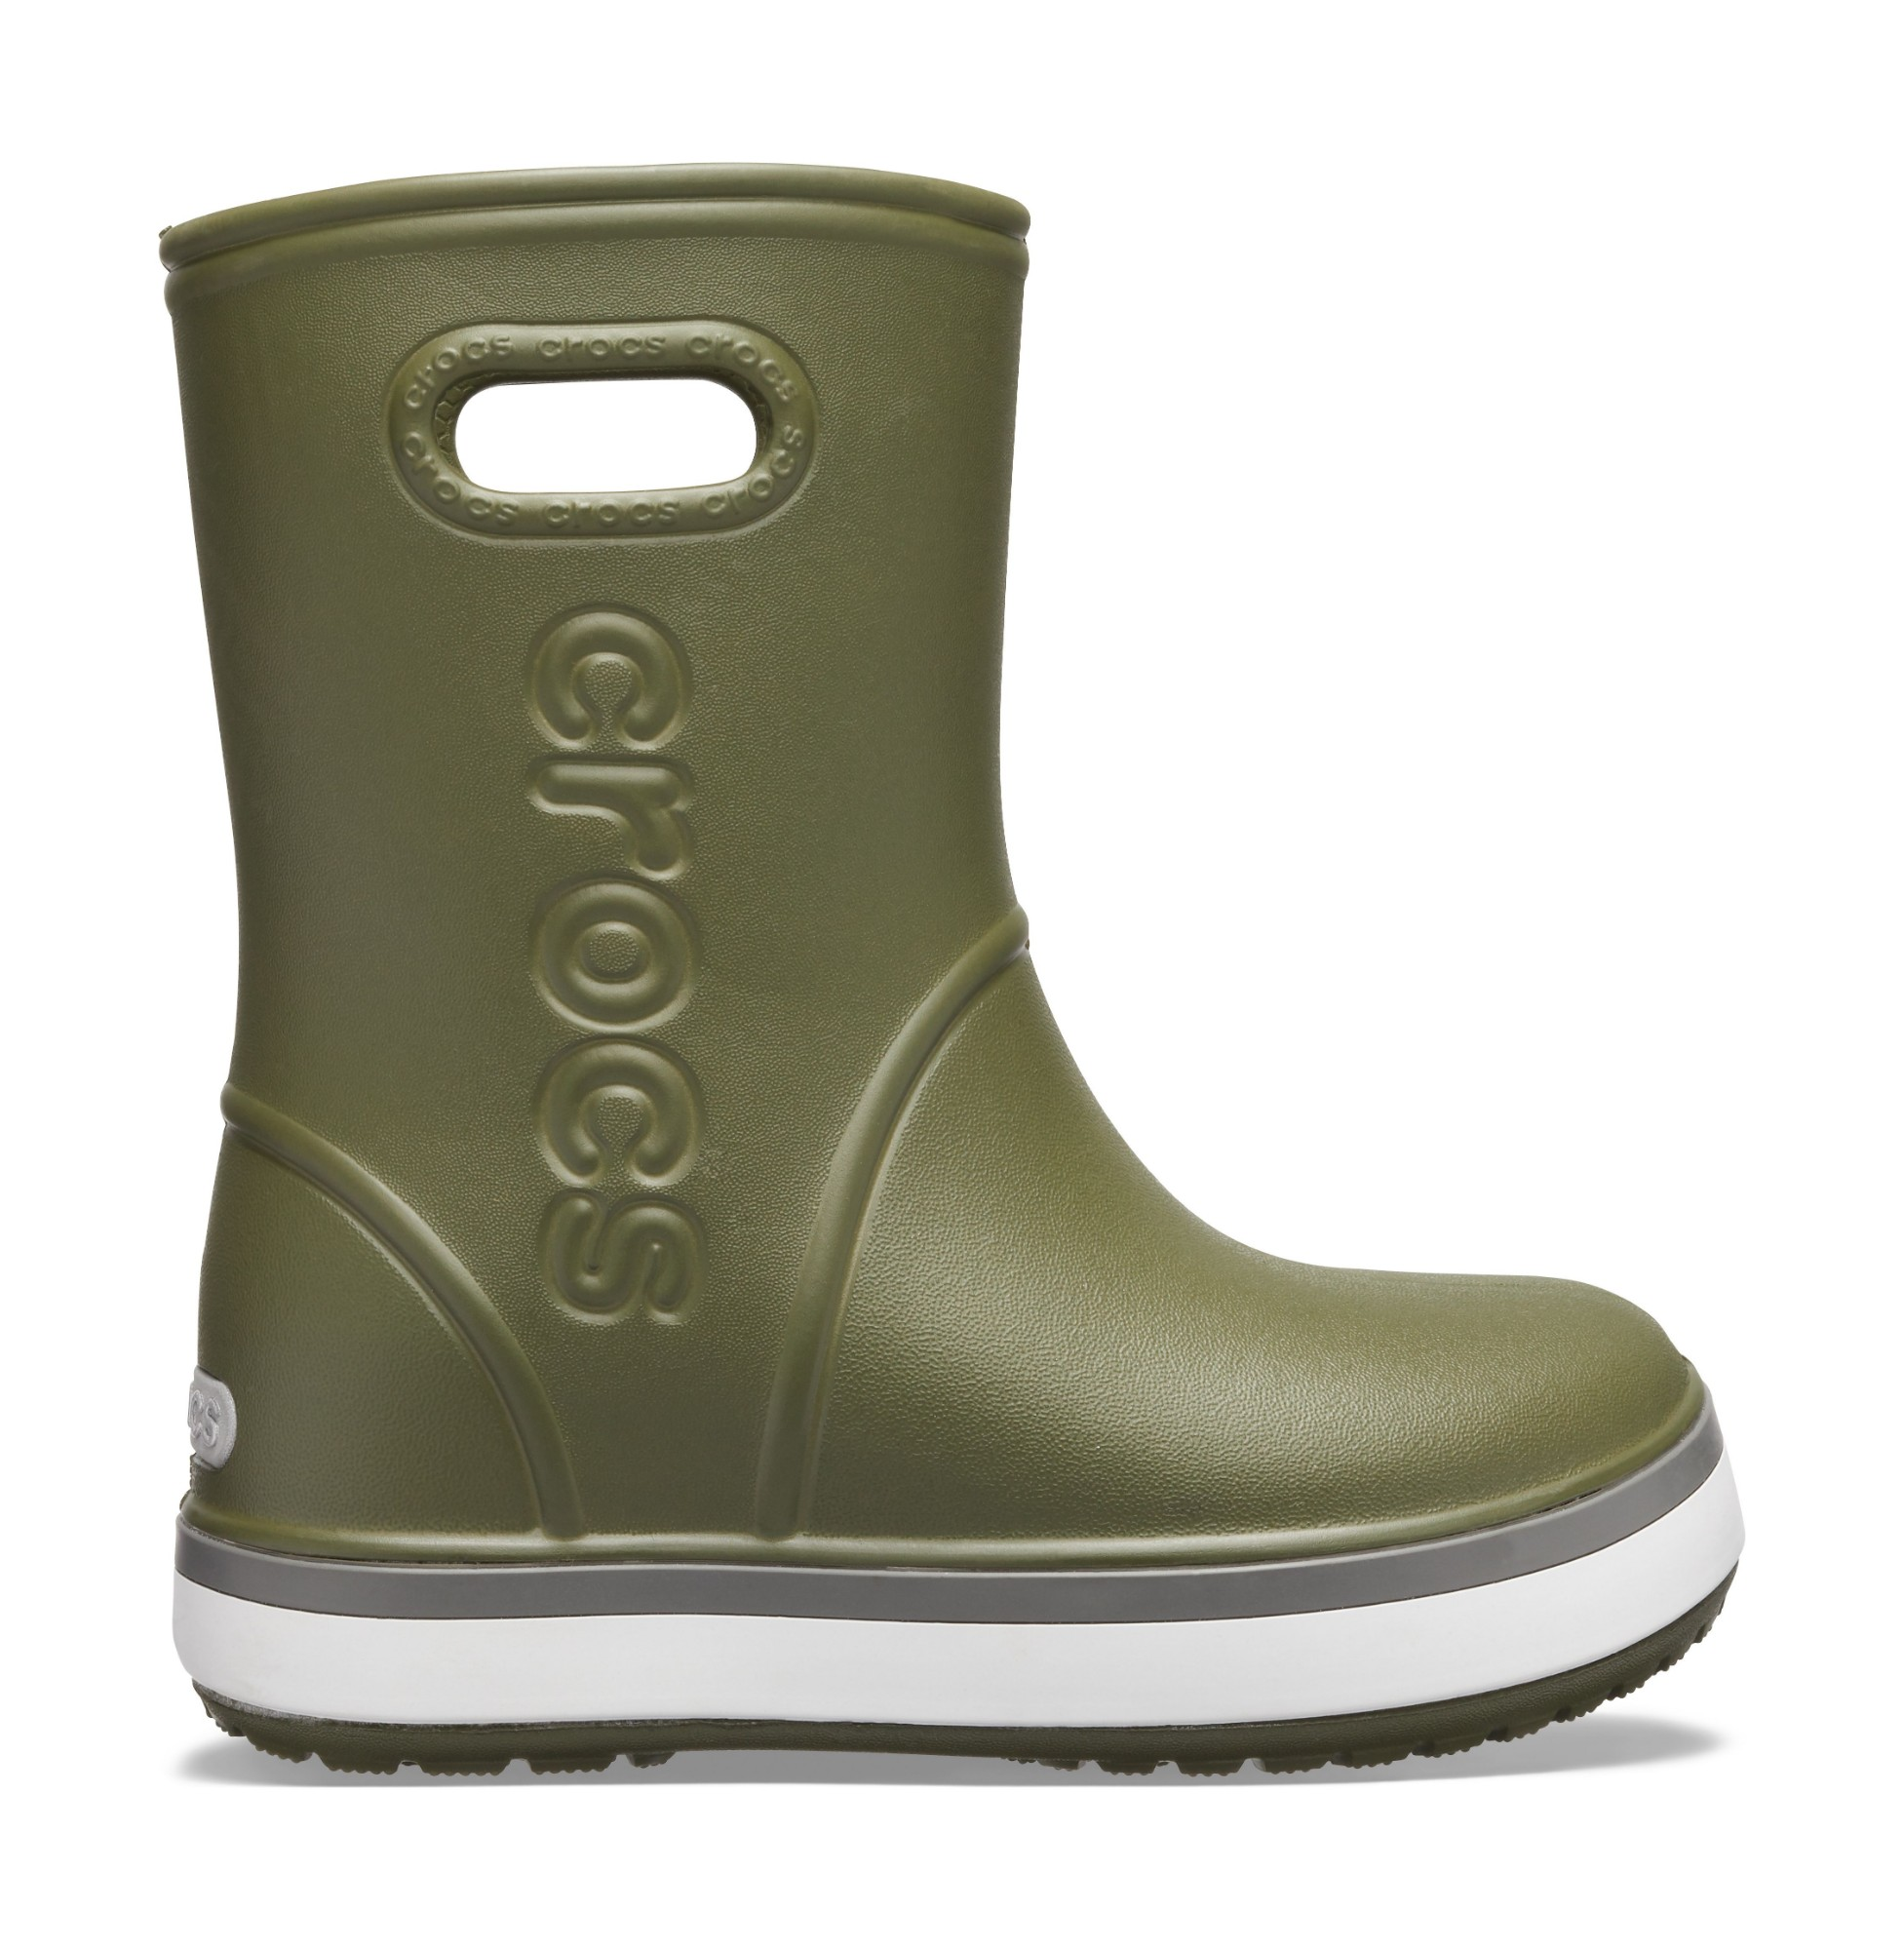 Crocs™ Crocband Rain Boot Kid's Army Green/Slate Grey 29